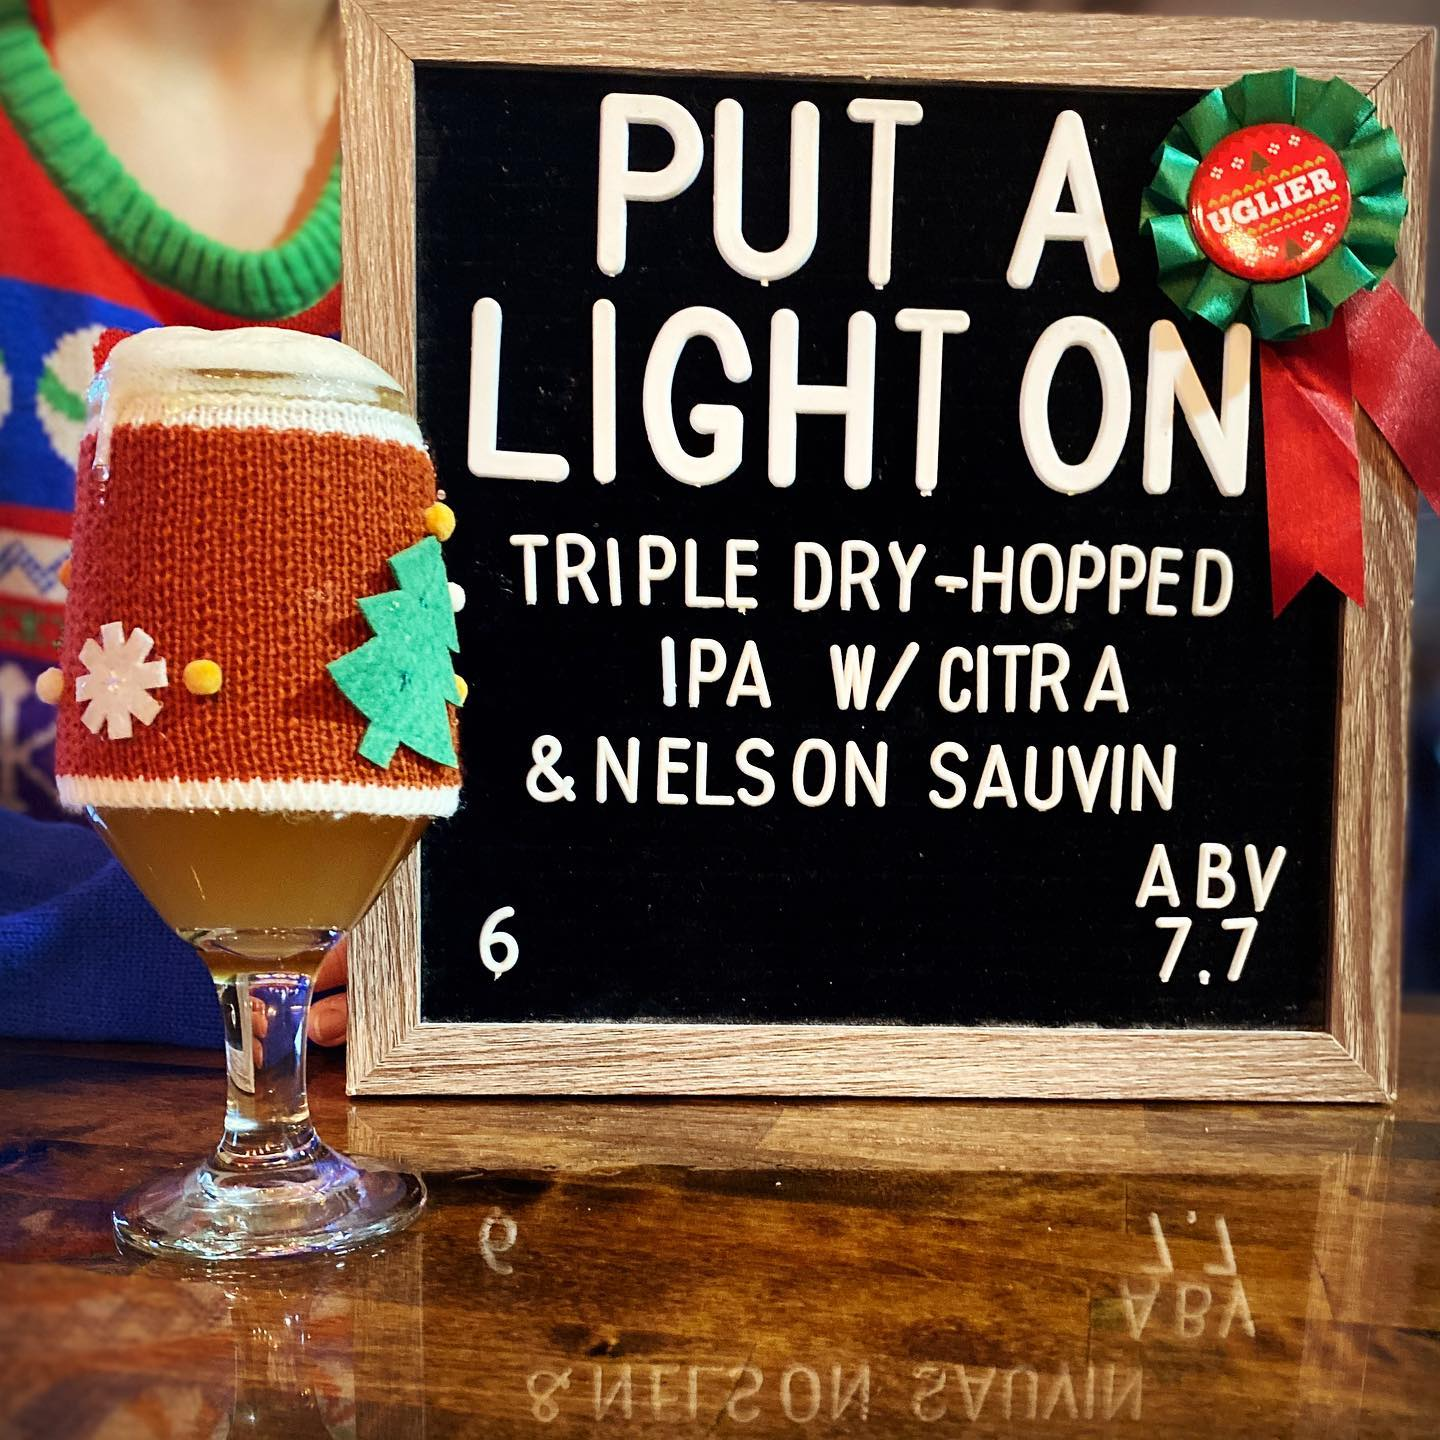 Glass fof beer in holiday sweater.  Information about beer on a letter board in background.